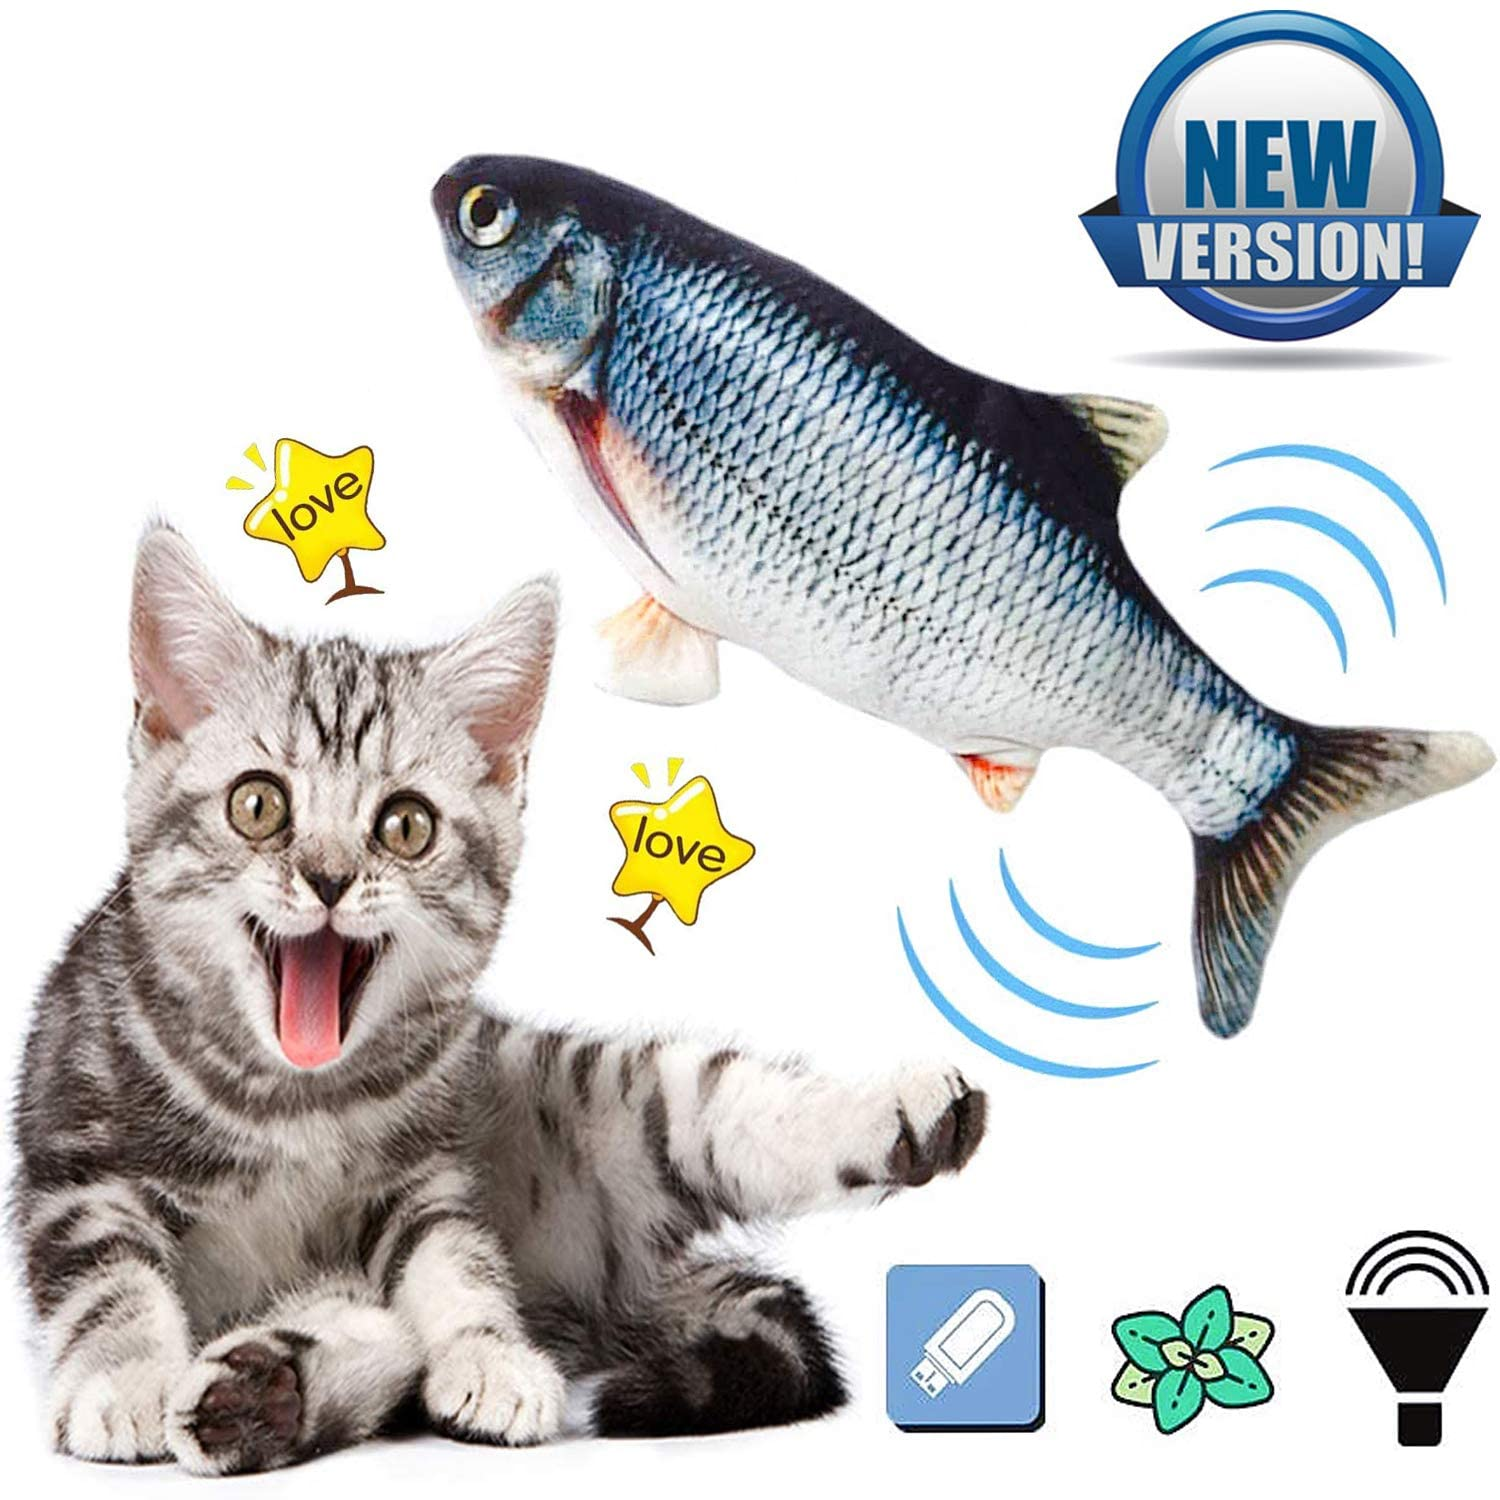 Ddzmz Cat Toys for Indoor Cats Interactive, Cat Kicker Fish Realistic Plush Simulation Electric Wagging Fish Refillable Catnip Cat Toys Interactive Pets Pillow Chew Bite Kick for Cat Kitten Kitty 11